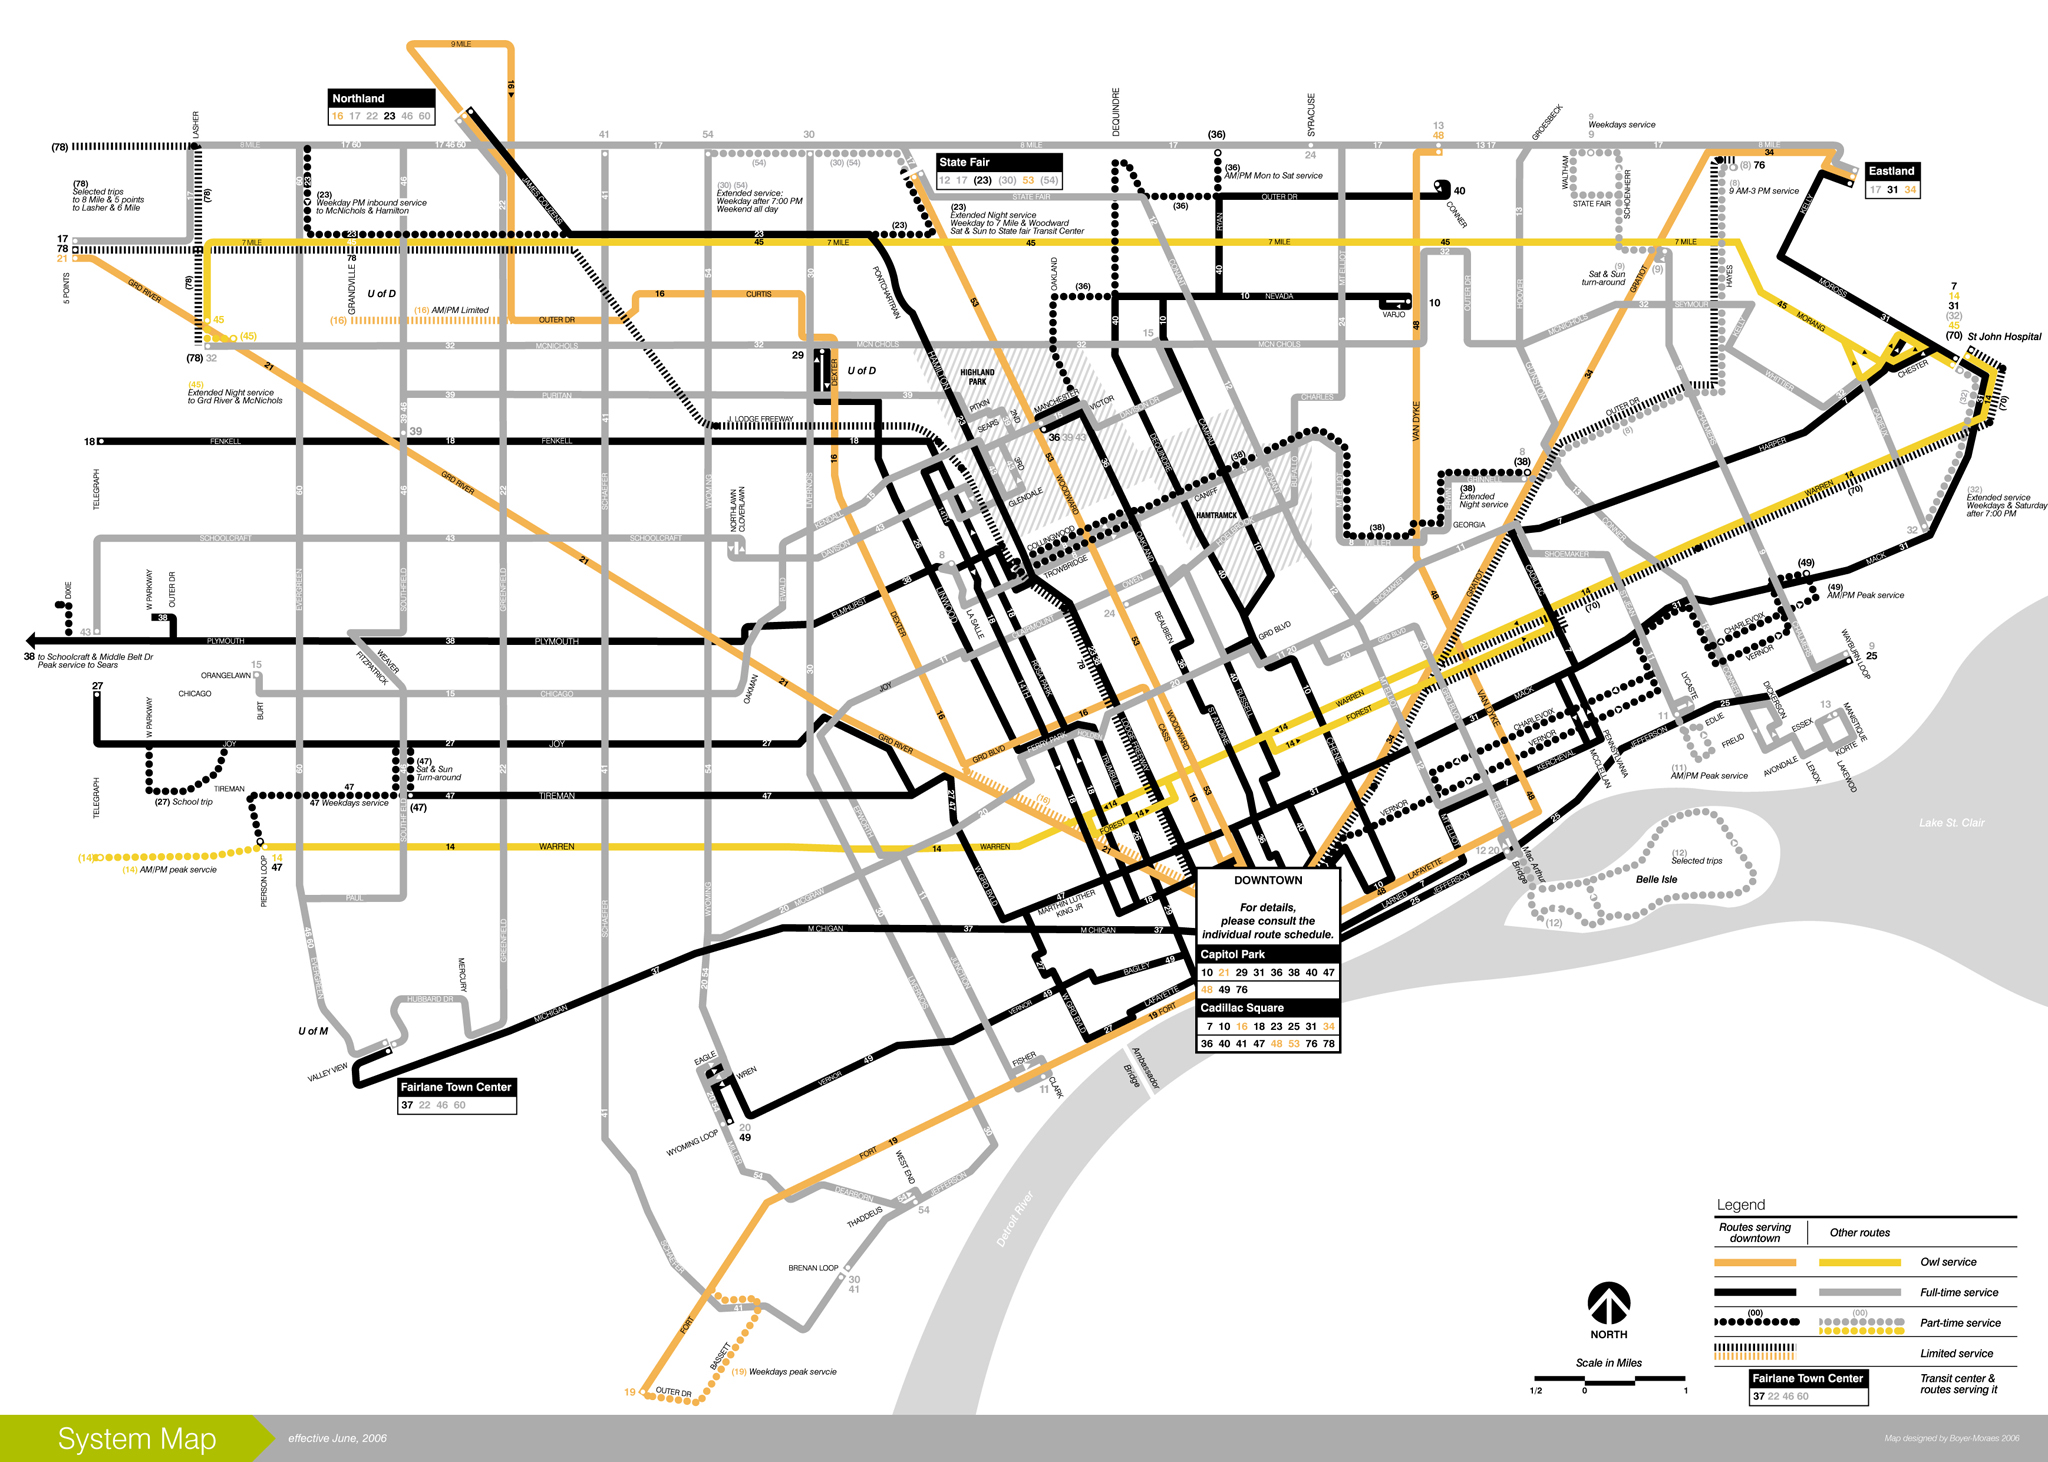 DDOT 2006 System Map - Detroit Michigan • mappery